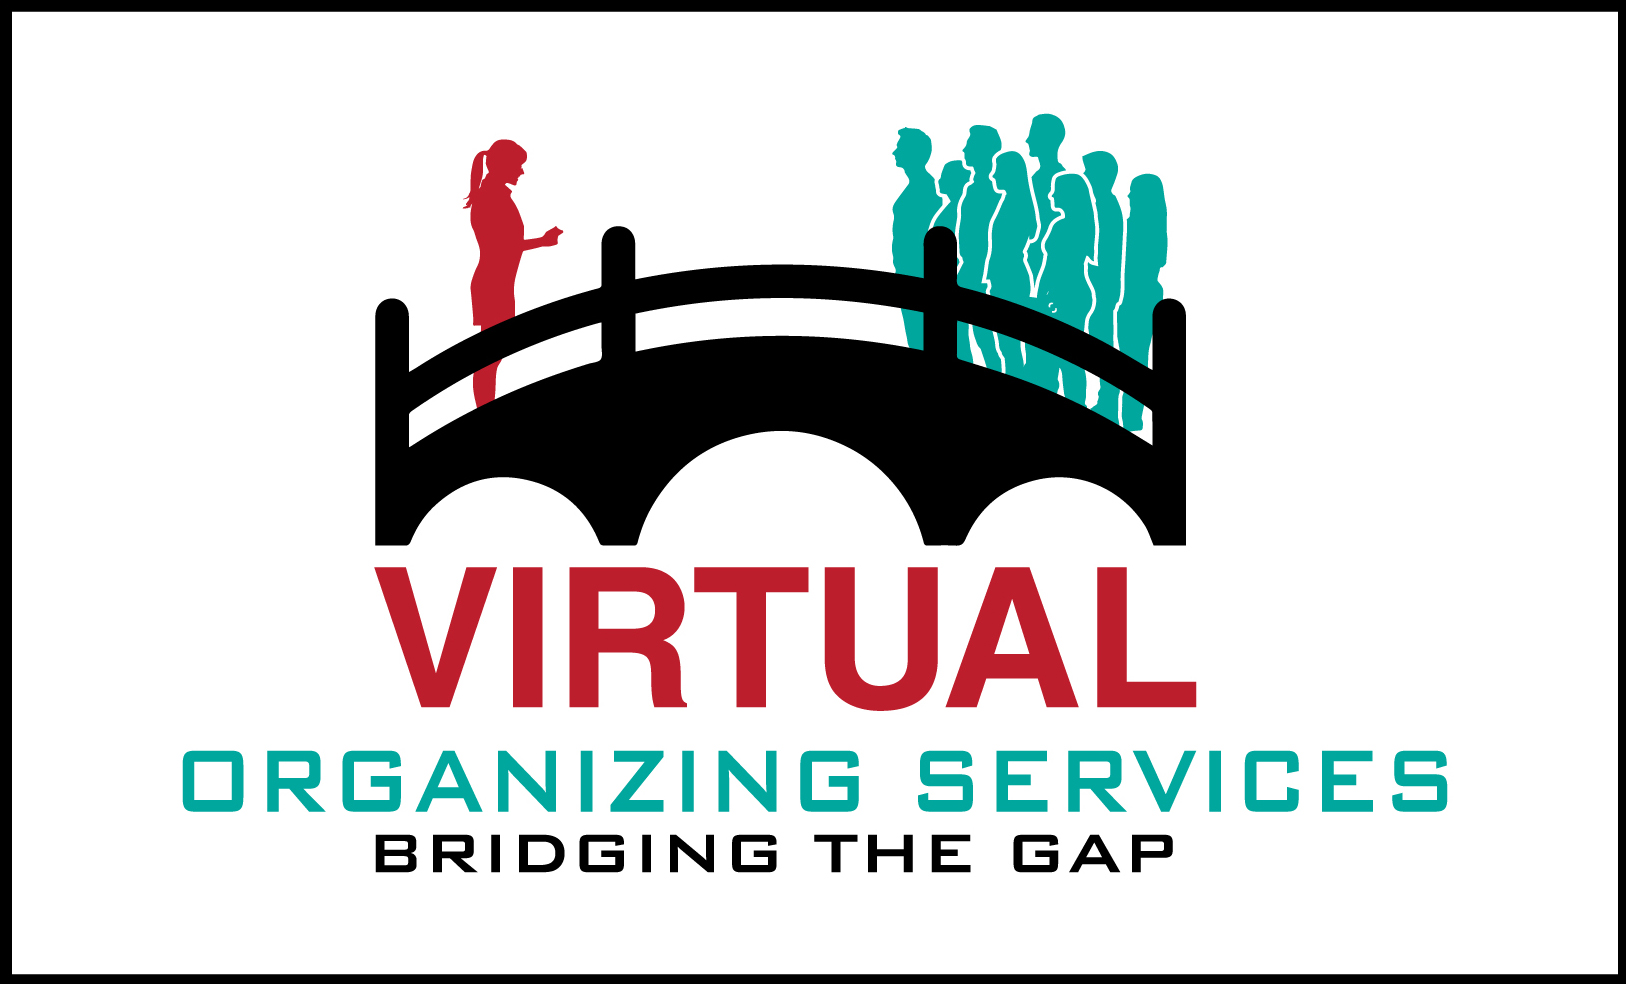 C3201 Virtual Organizing Services Logo 01 2016